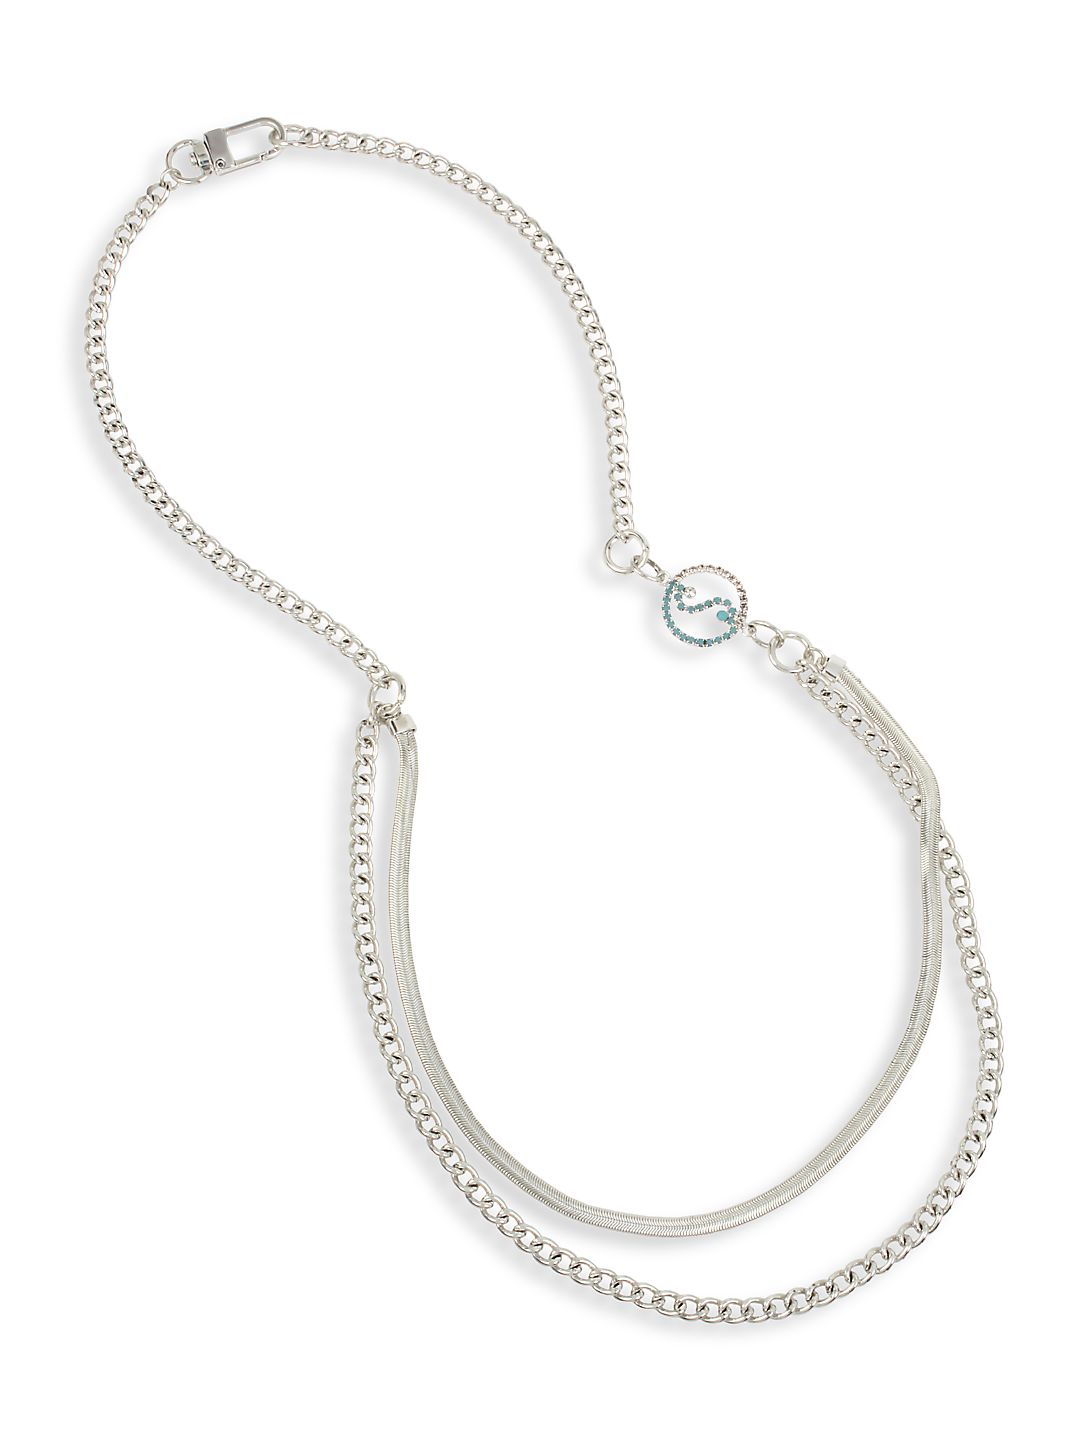 Stonewashed Bow Mixed Chain Long Layered Necklace